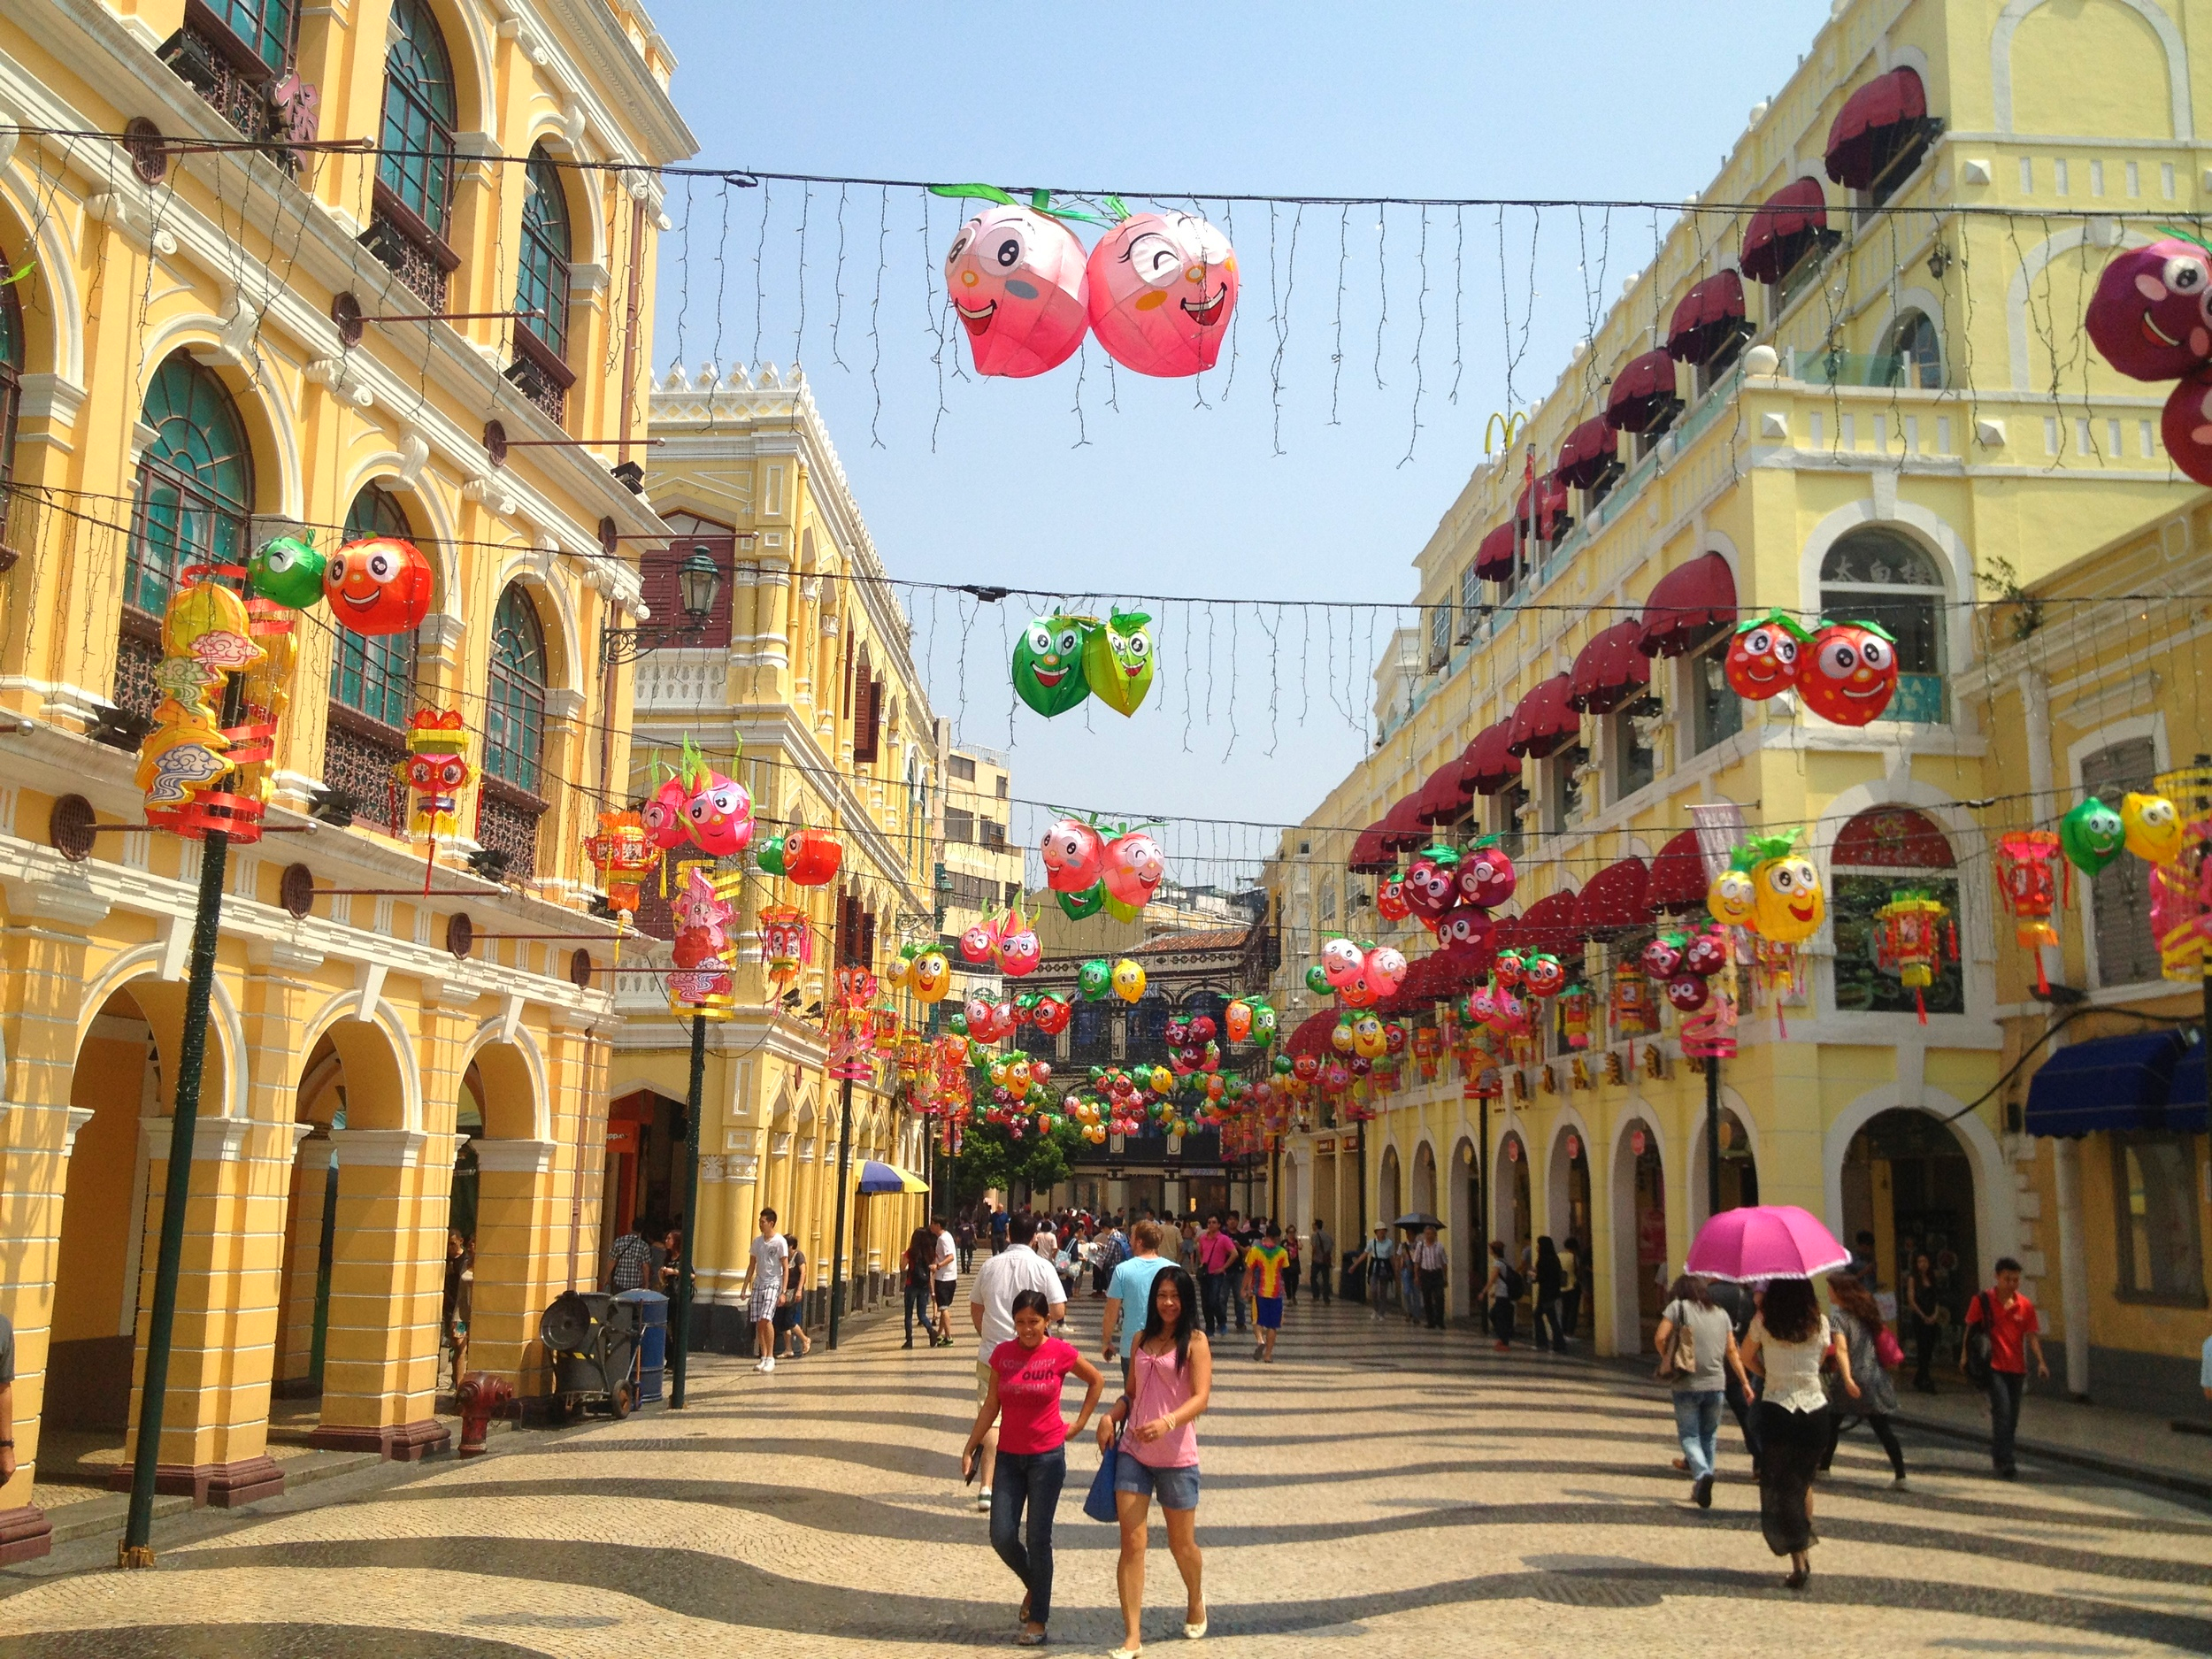 Many streets in central Macau are pedestrian only